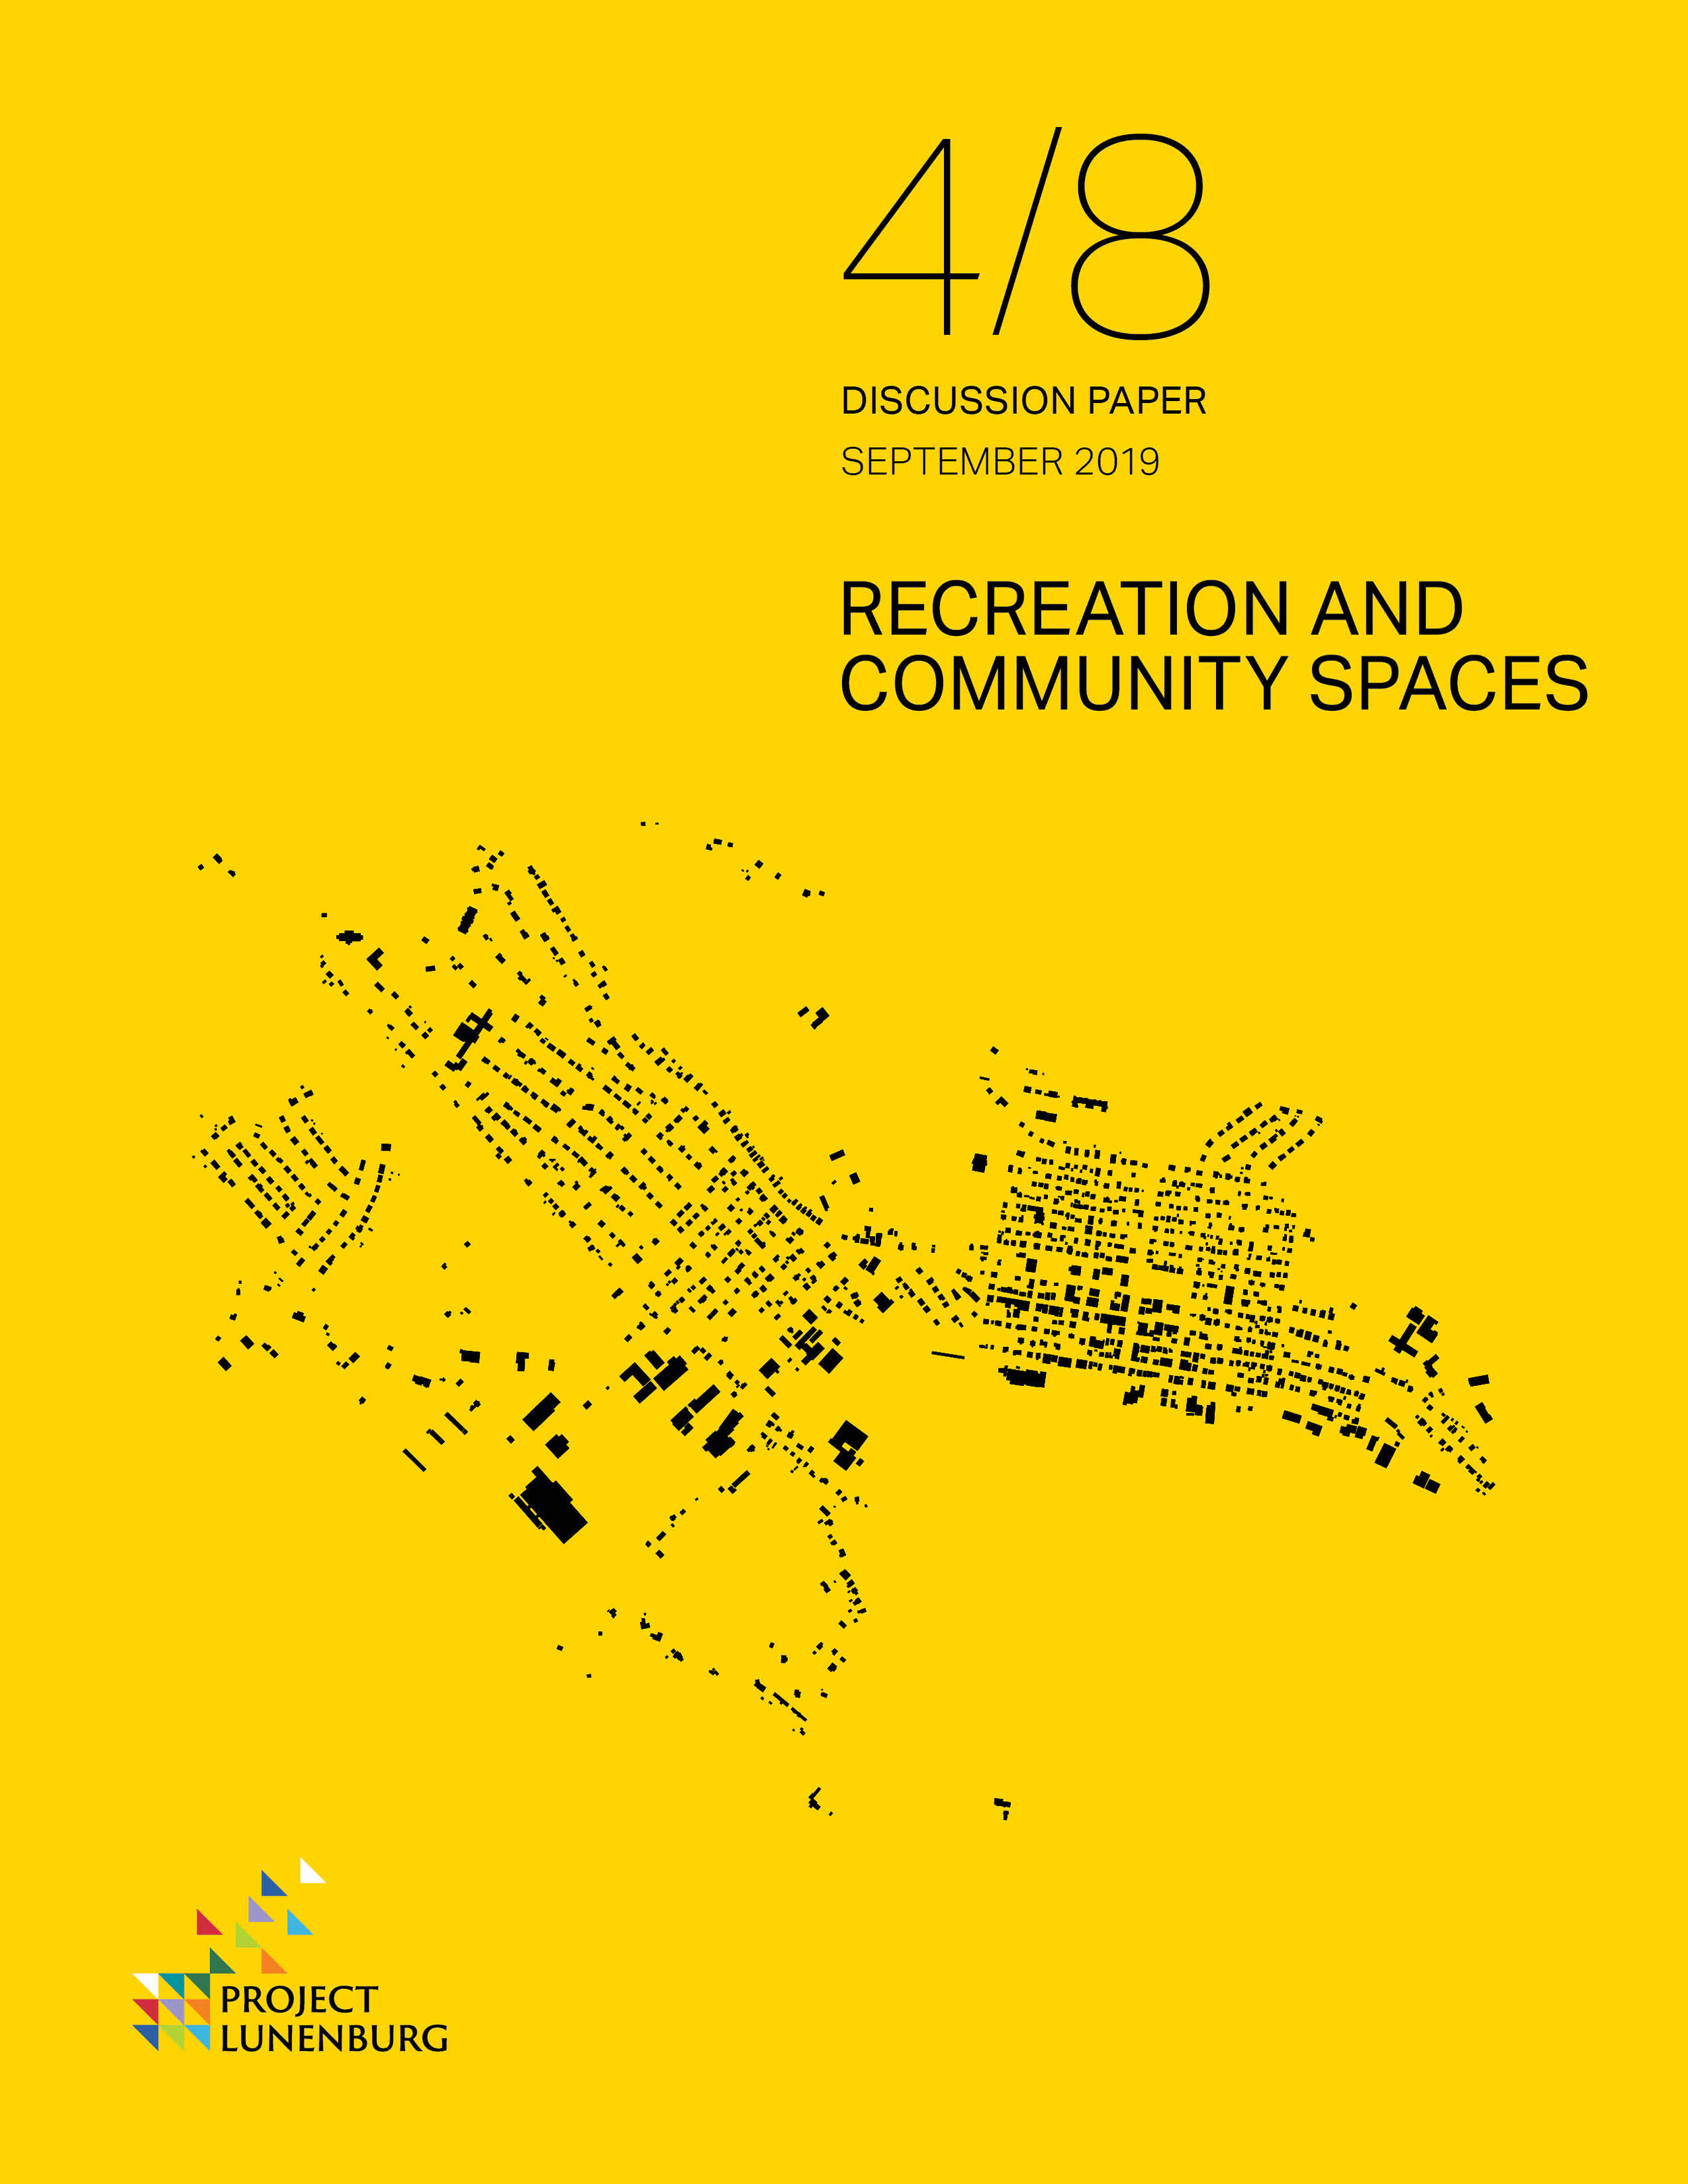 Discussion Paper 4/8: Recreation and Community Spaces  This paper presents the importance of parks and recreation spaces, as well as broader trends. it also provides an inventory and analysis of existing assets in Lunenburg.